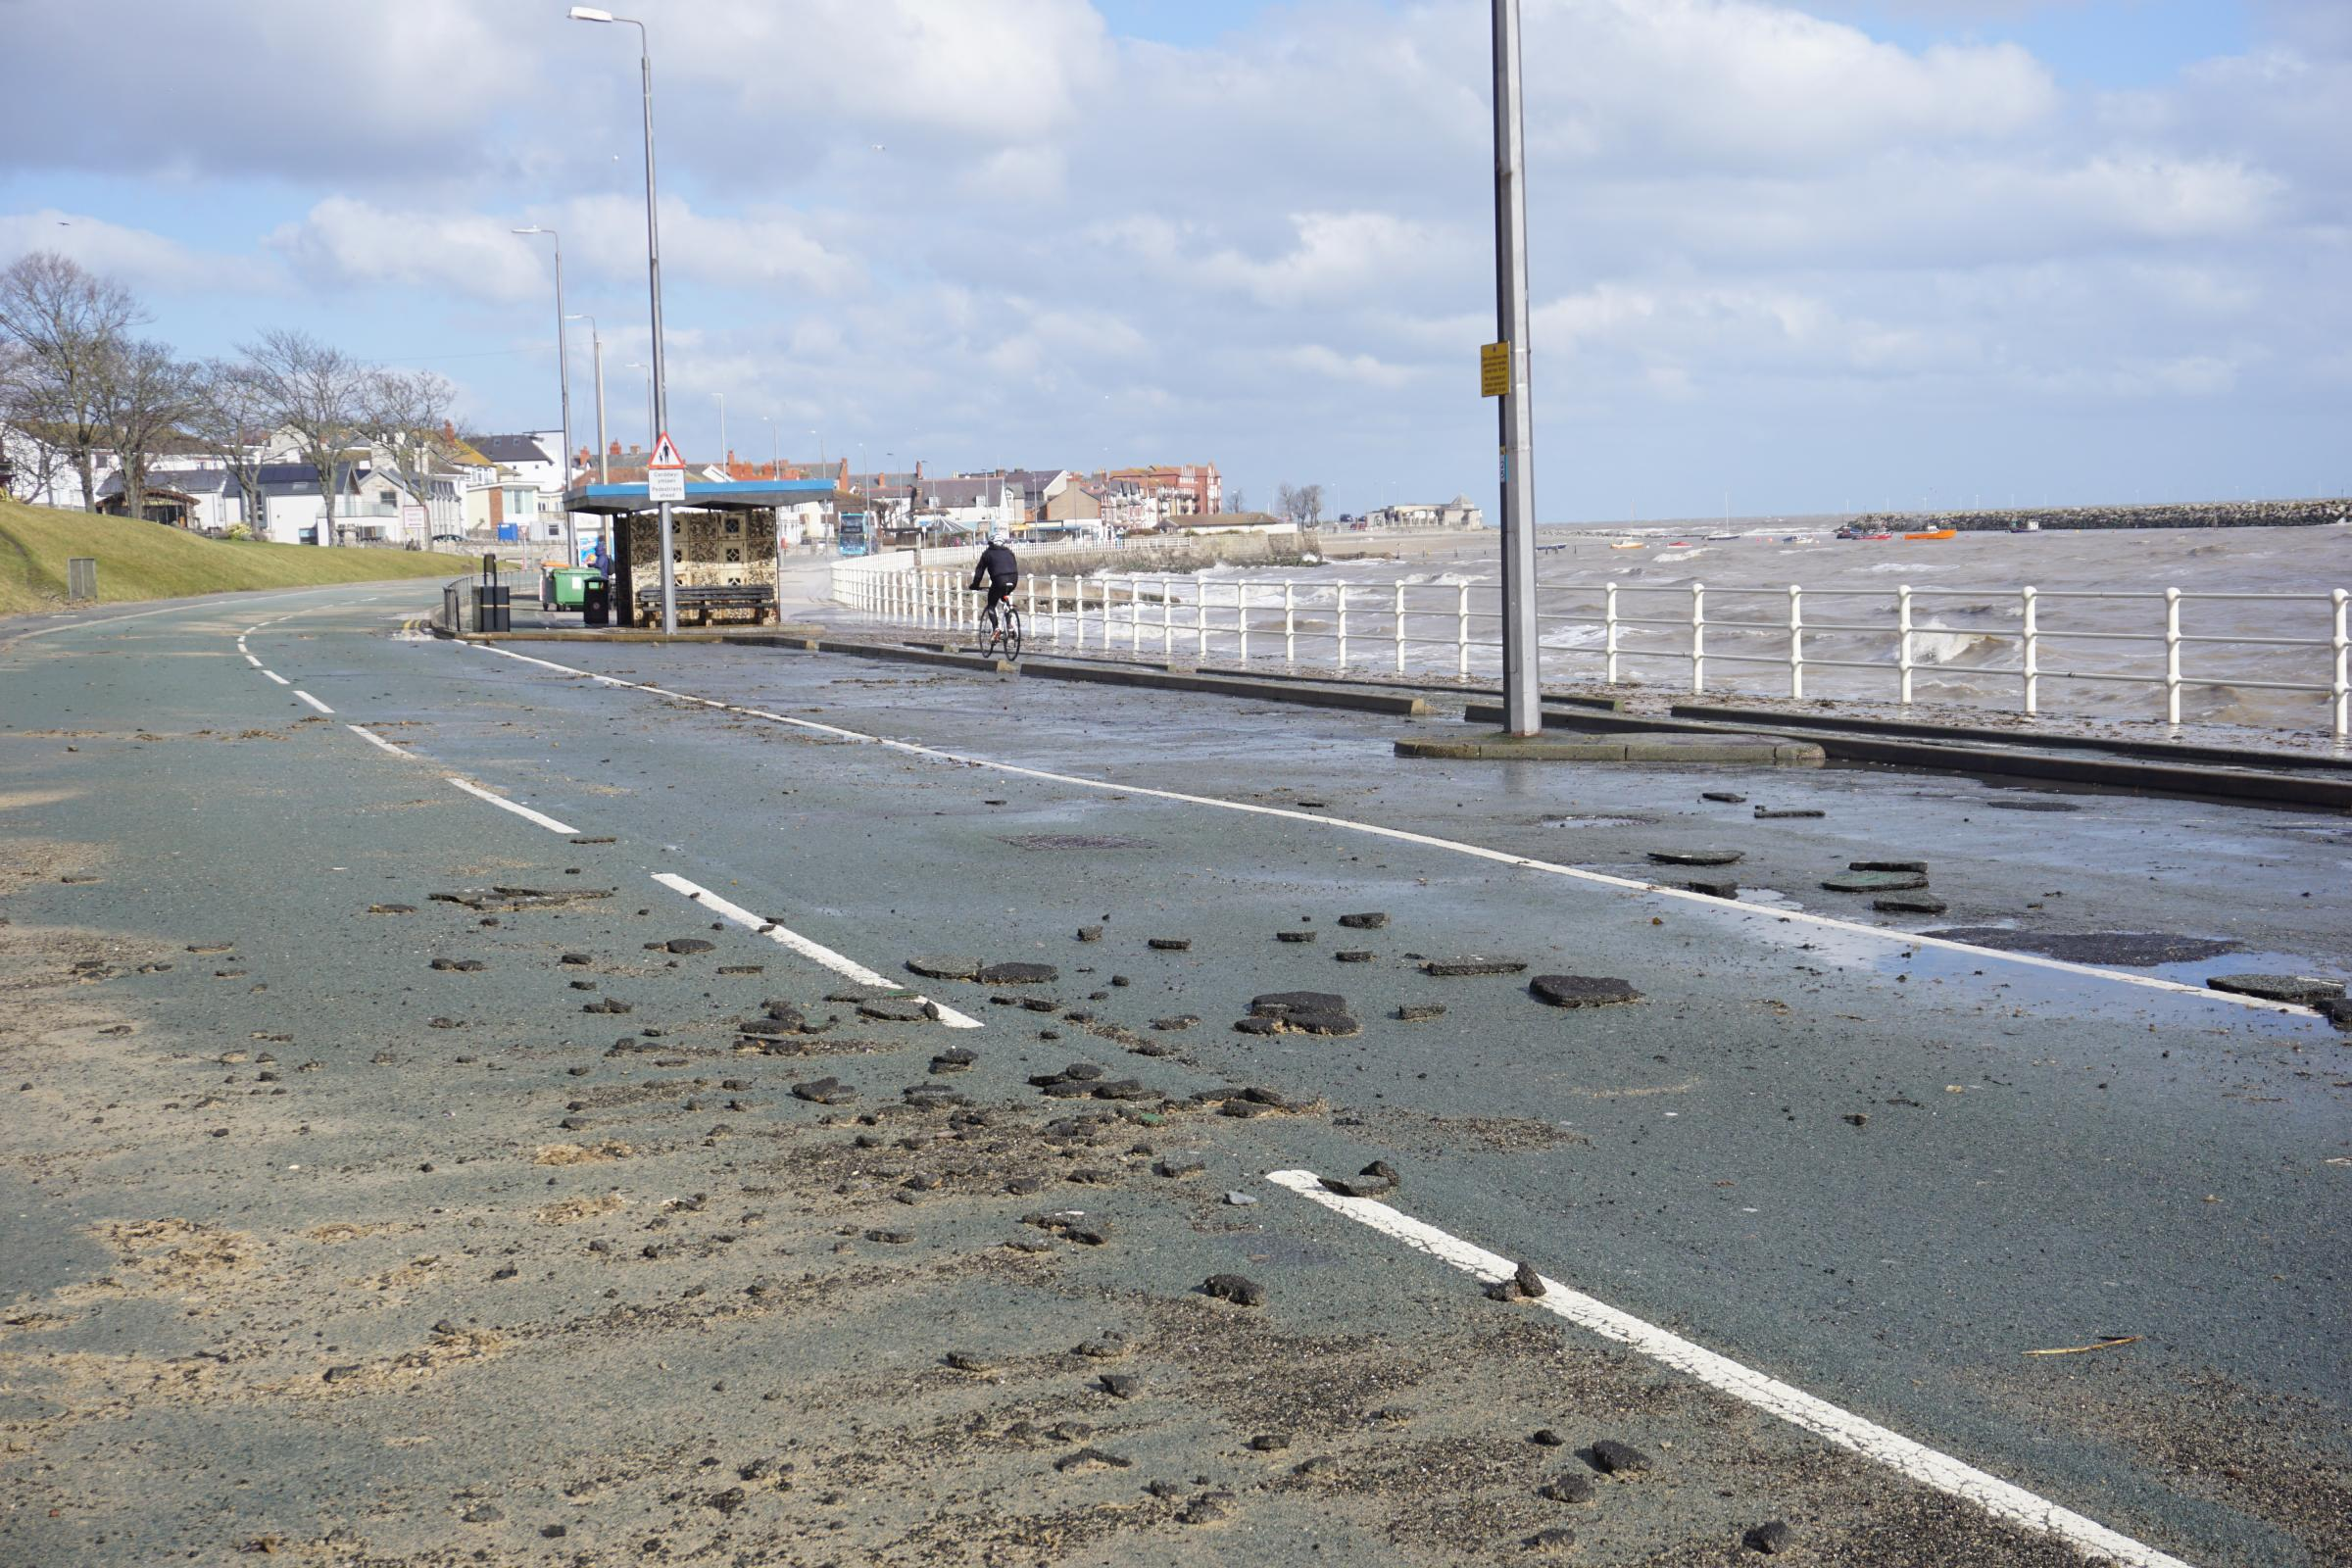 Damage on the West Promenade in Rhos-on-Sea. Picture: Patrick Glover